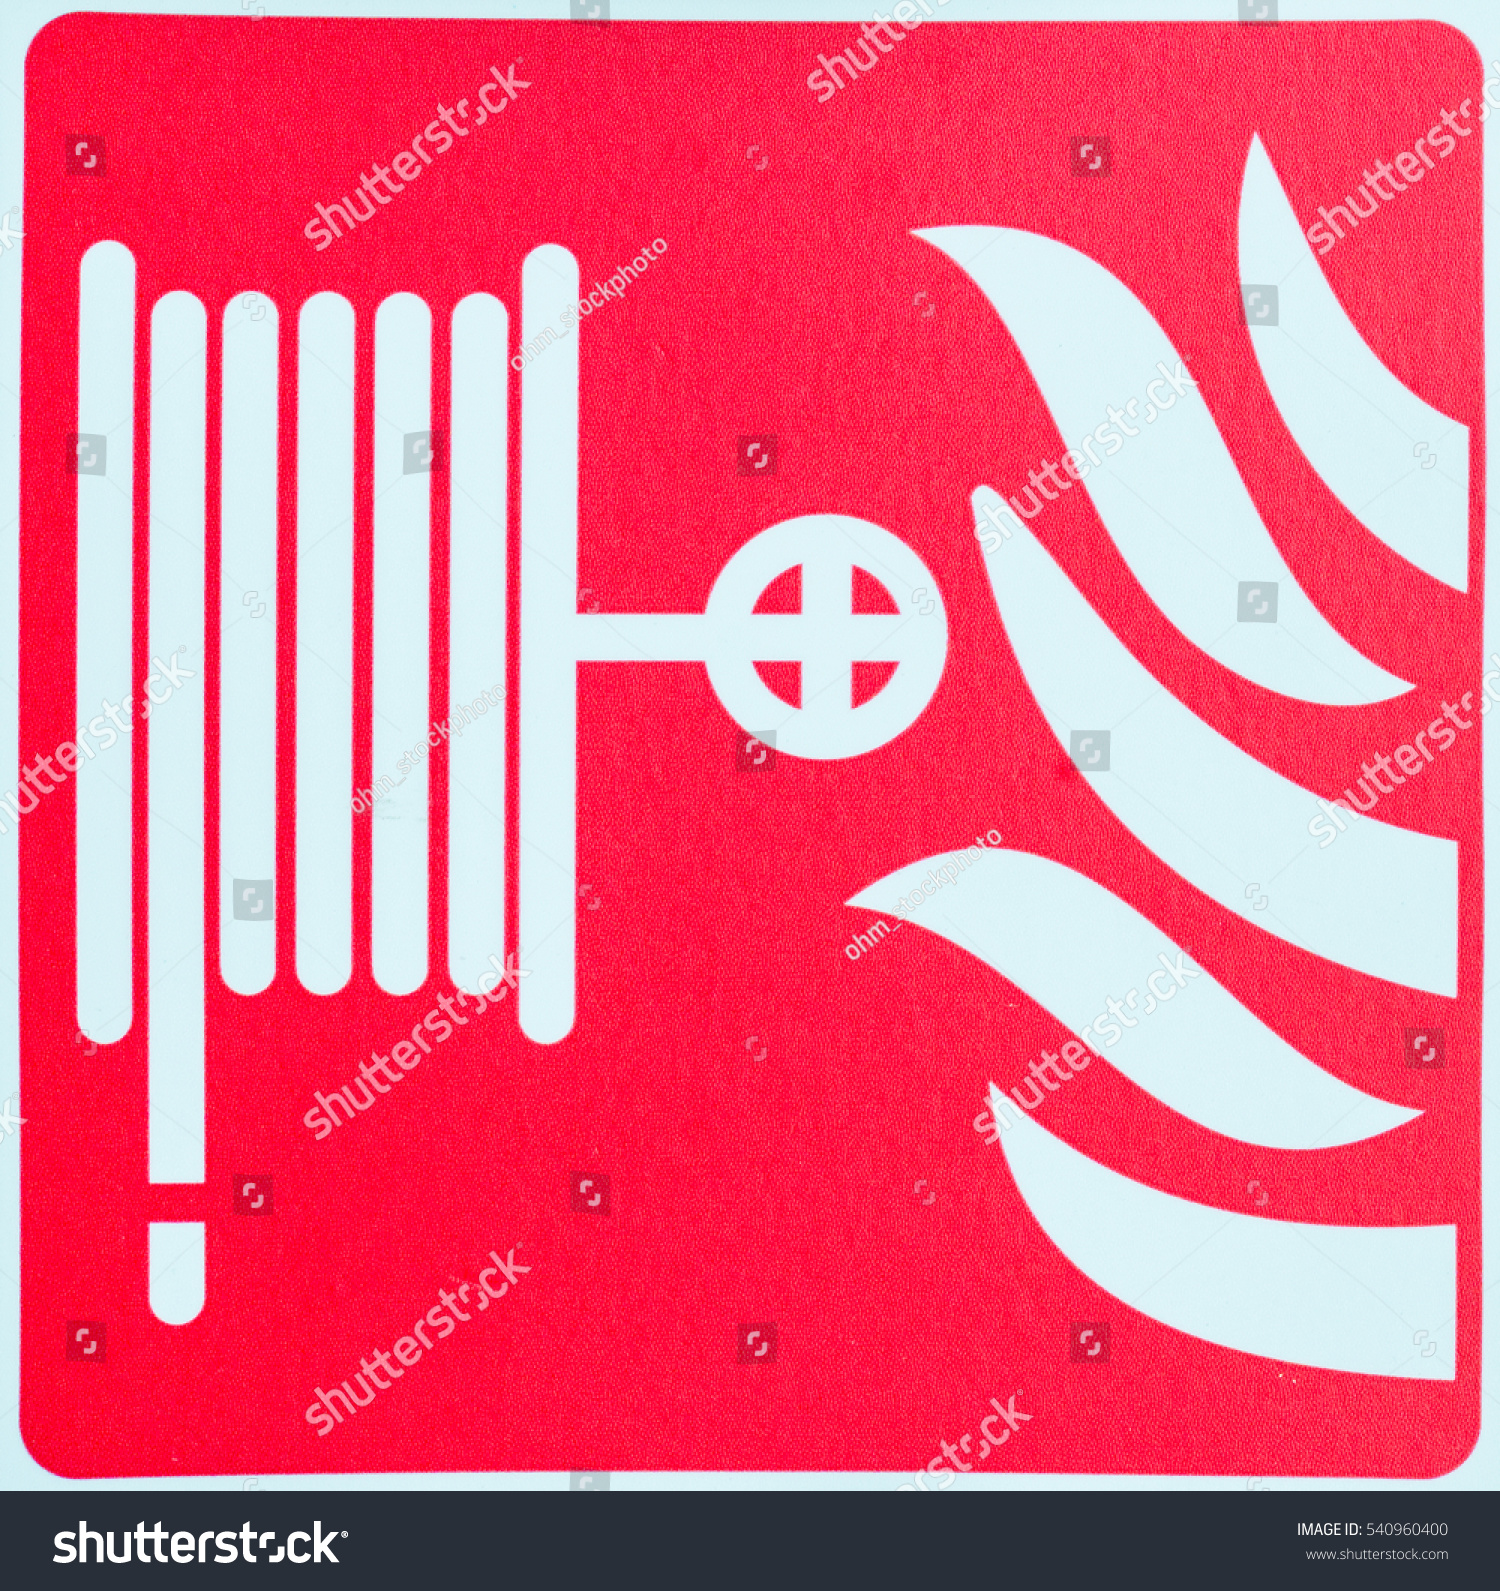 Fire Fighting Symbol Stock Photo 540960400 Shutterstock